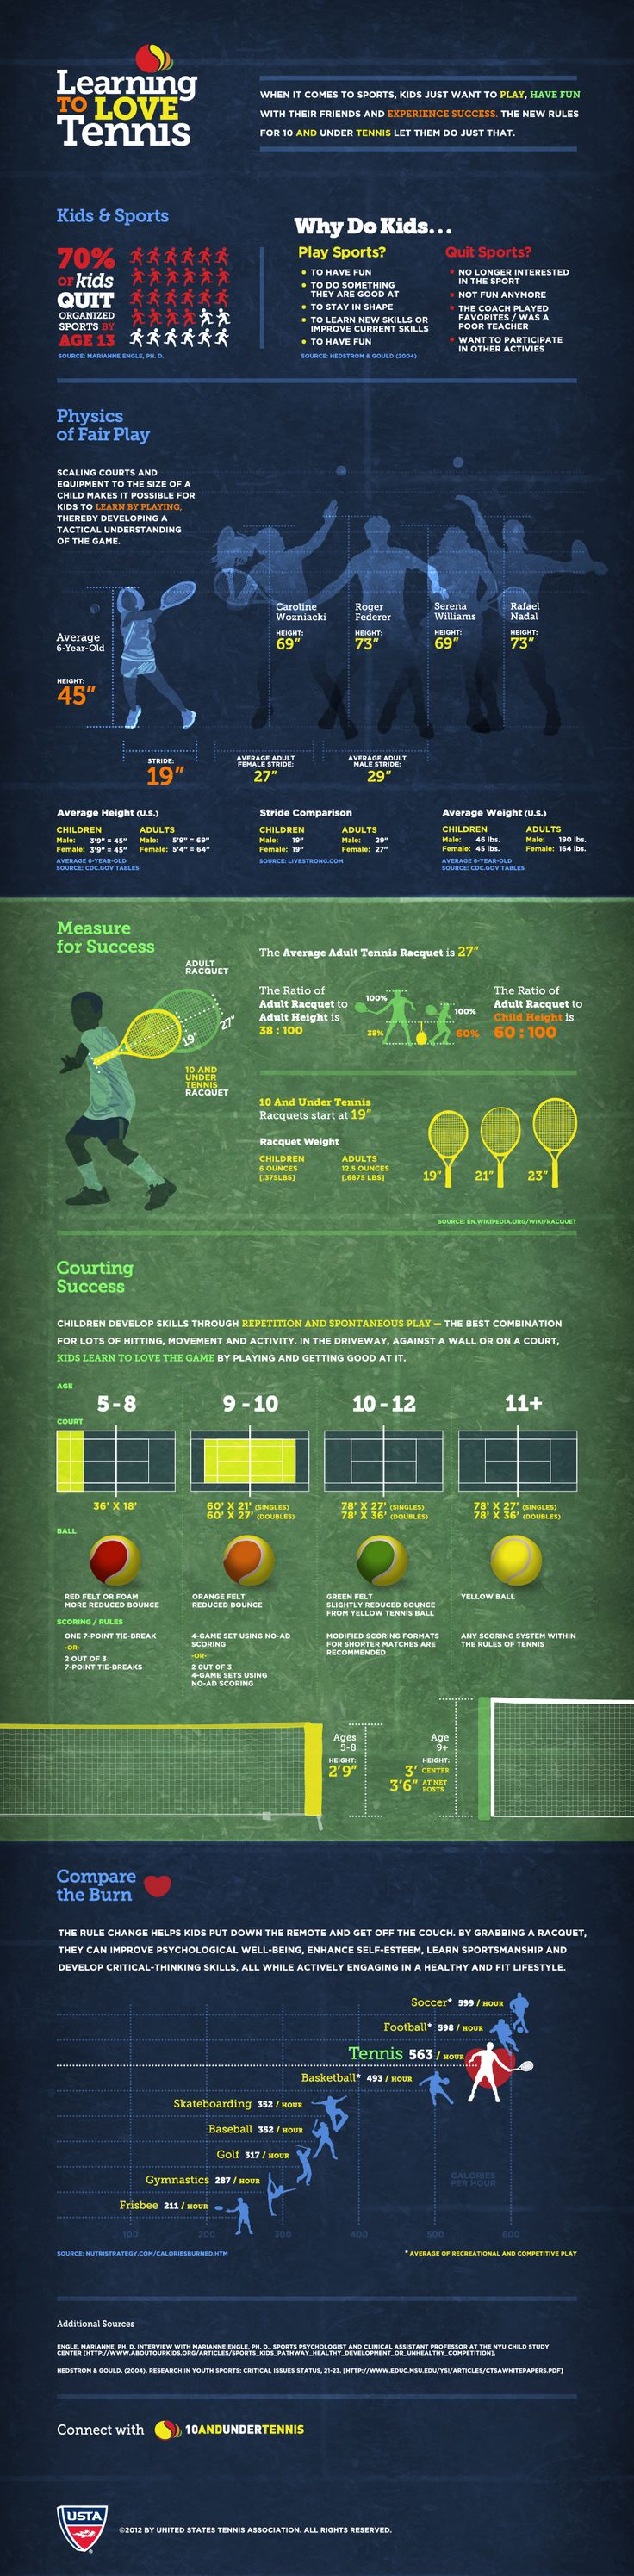 10 and Under Tennis infographic. Visit 10andUnderTennis.com for more!